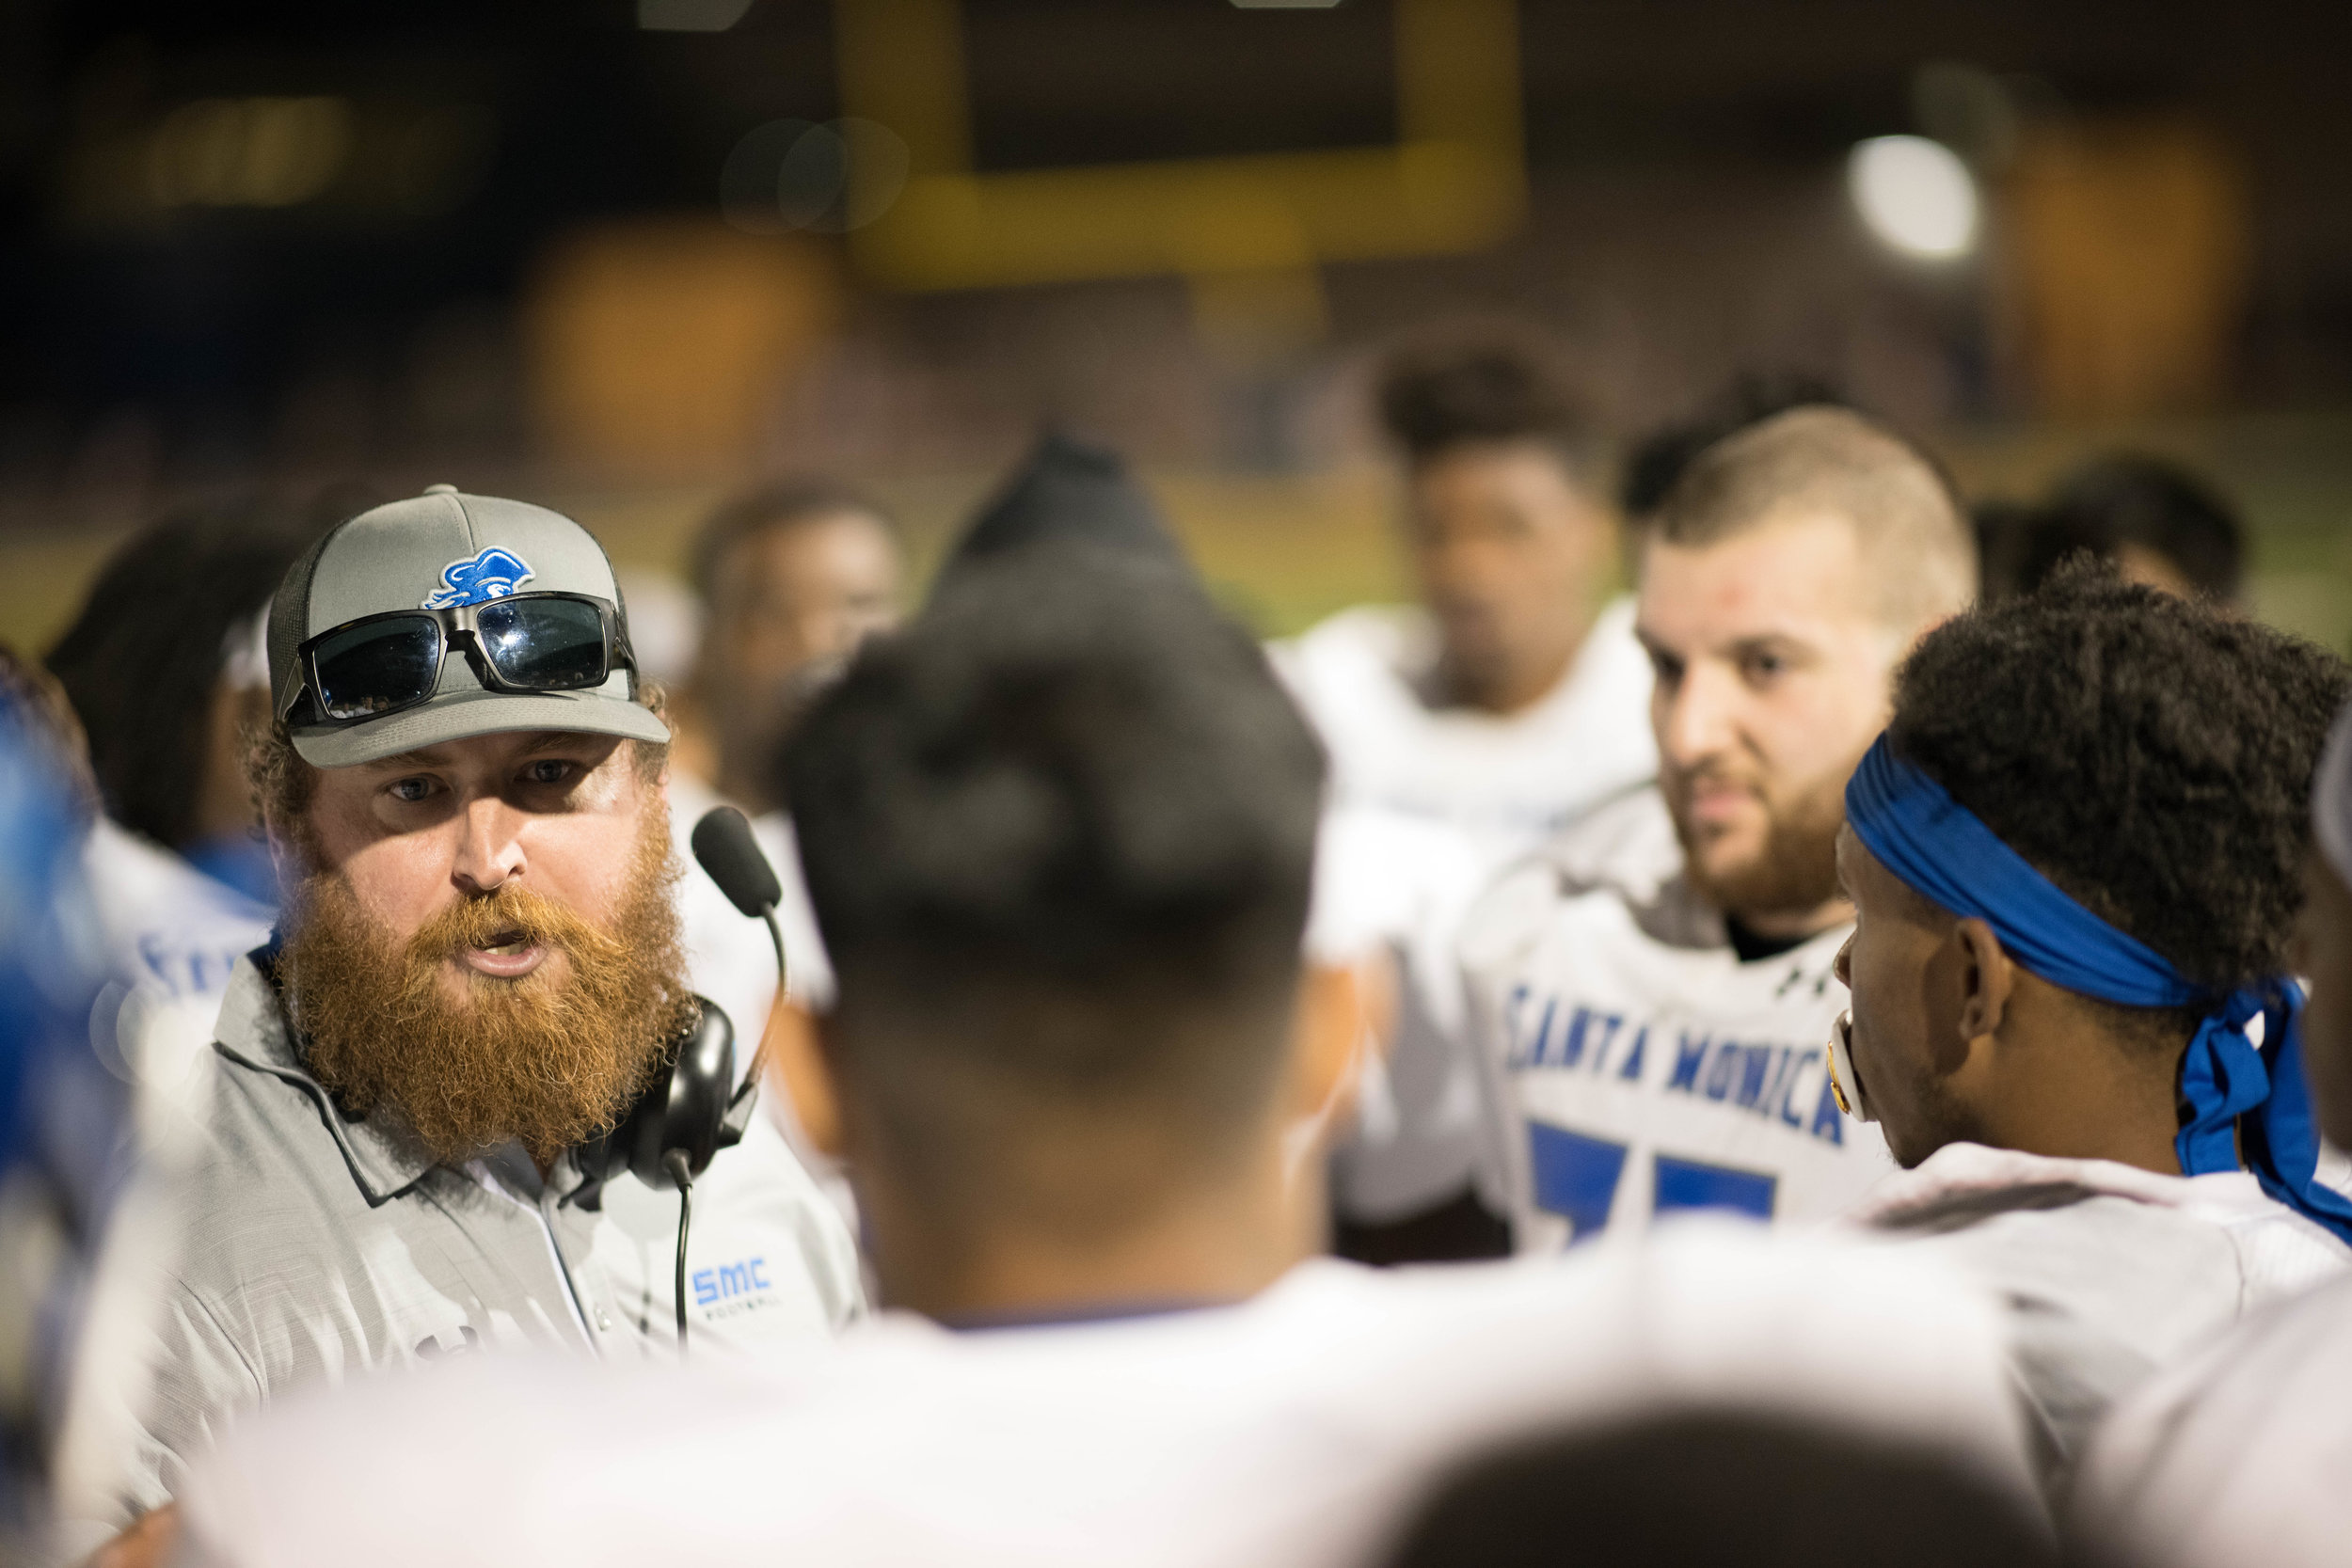 Head Coach Kelly Ledwith speaks to his team at halftime as they get ready for the third quarter.(Photo by Kevin Tidmore/The Corsair)